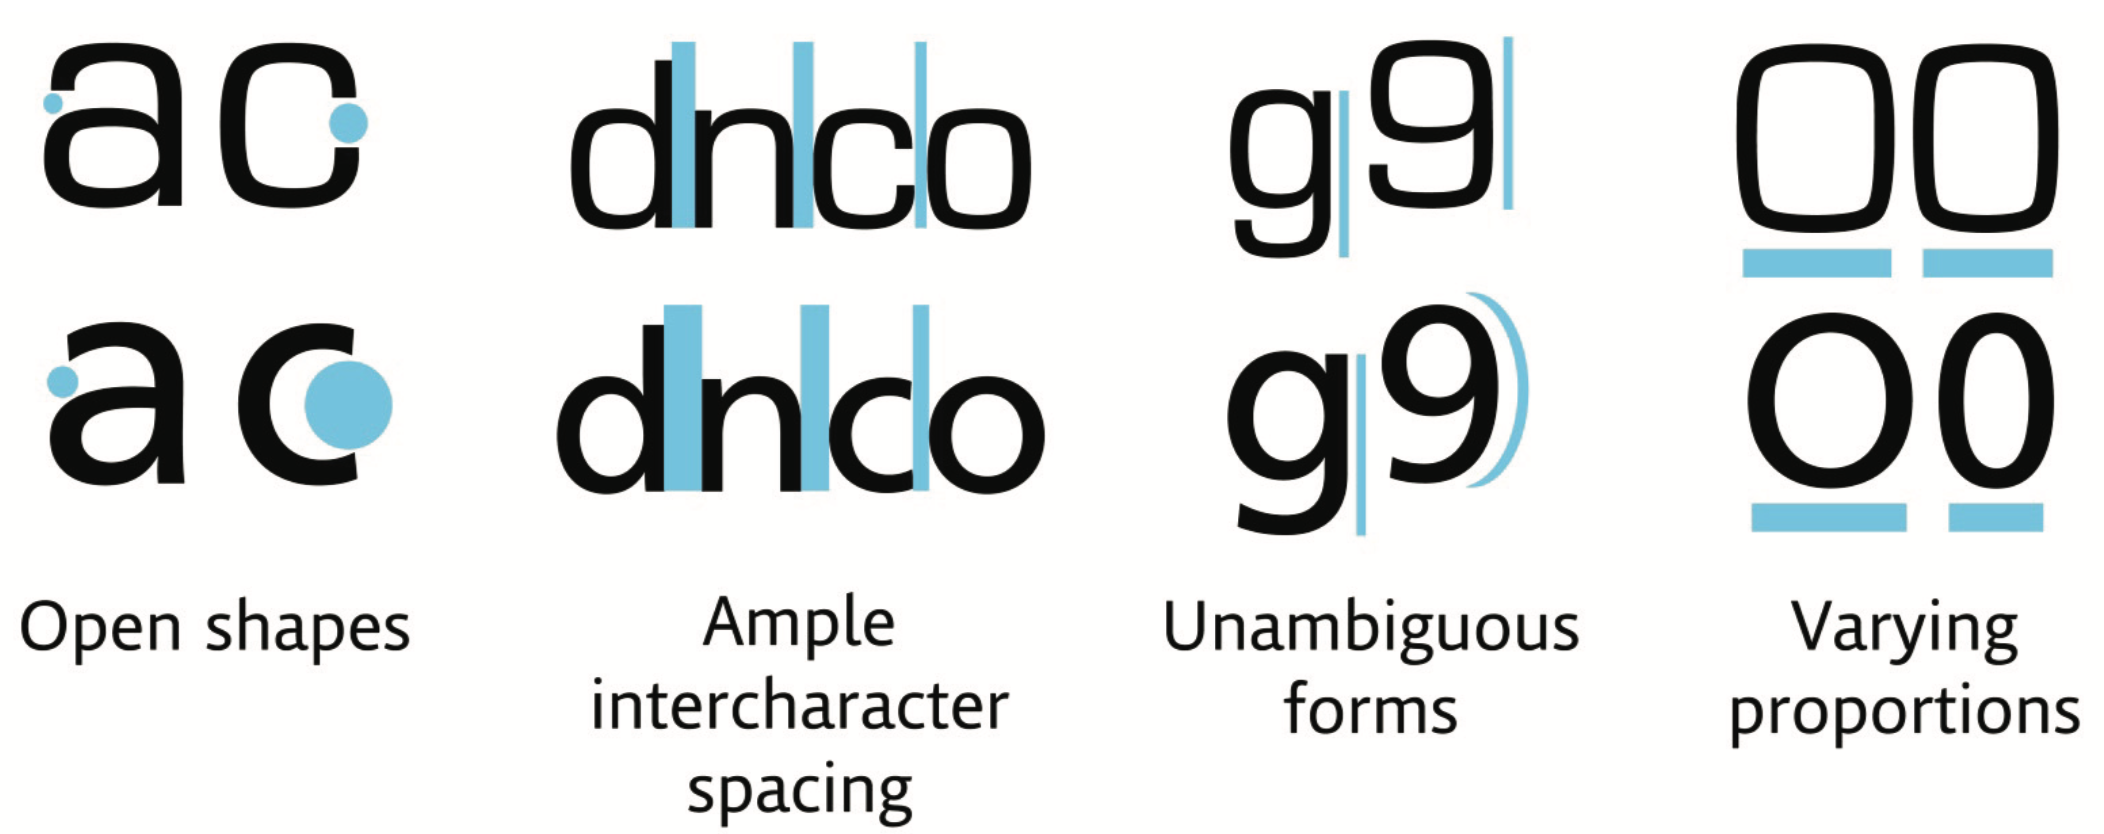 The top line of characters are a square grotesque design (Eurostile) and the bottom line a humanist design (Frutiger) highlighting various characteristics thought to improve legibility